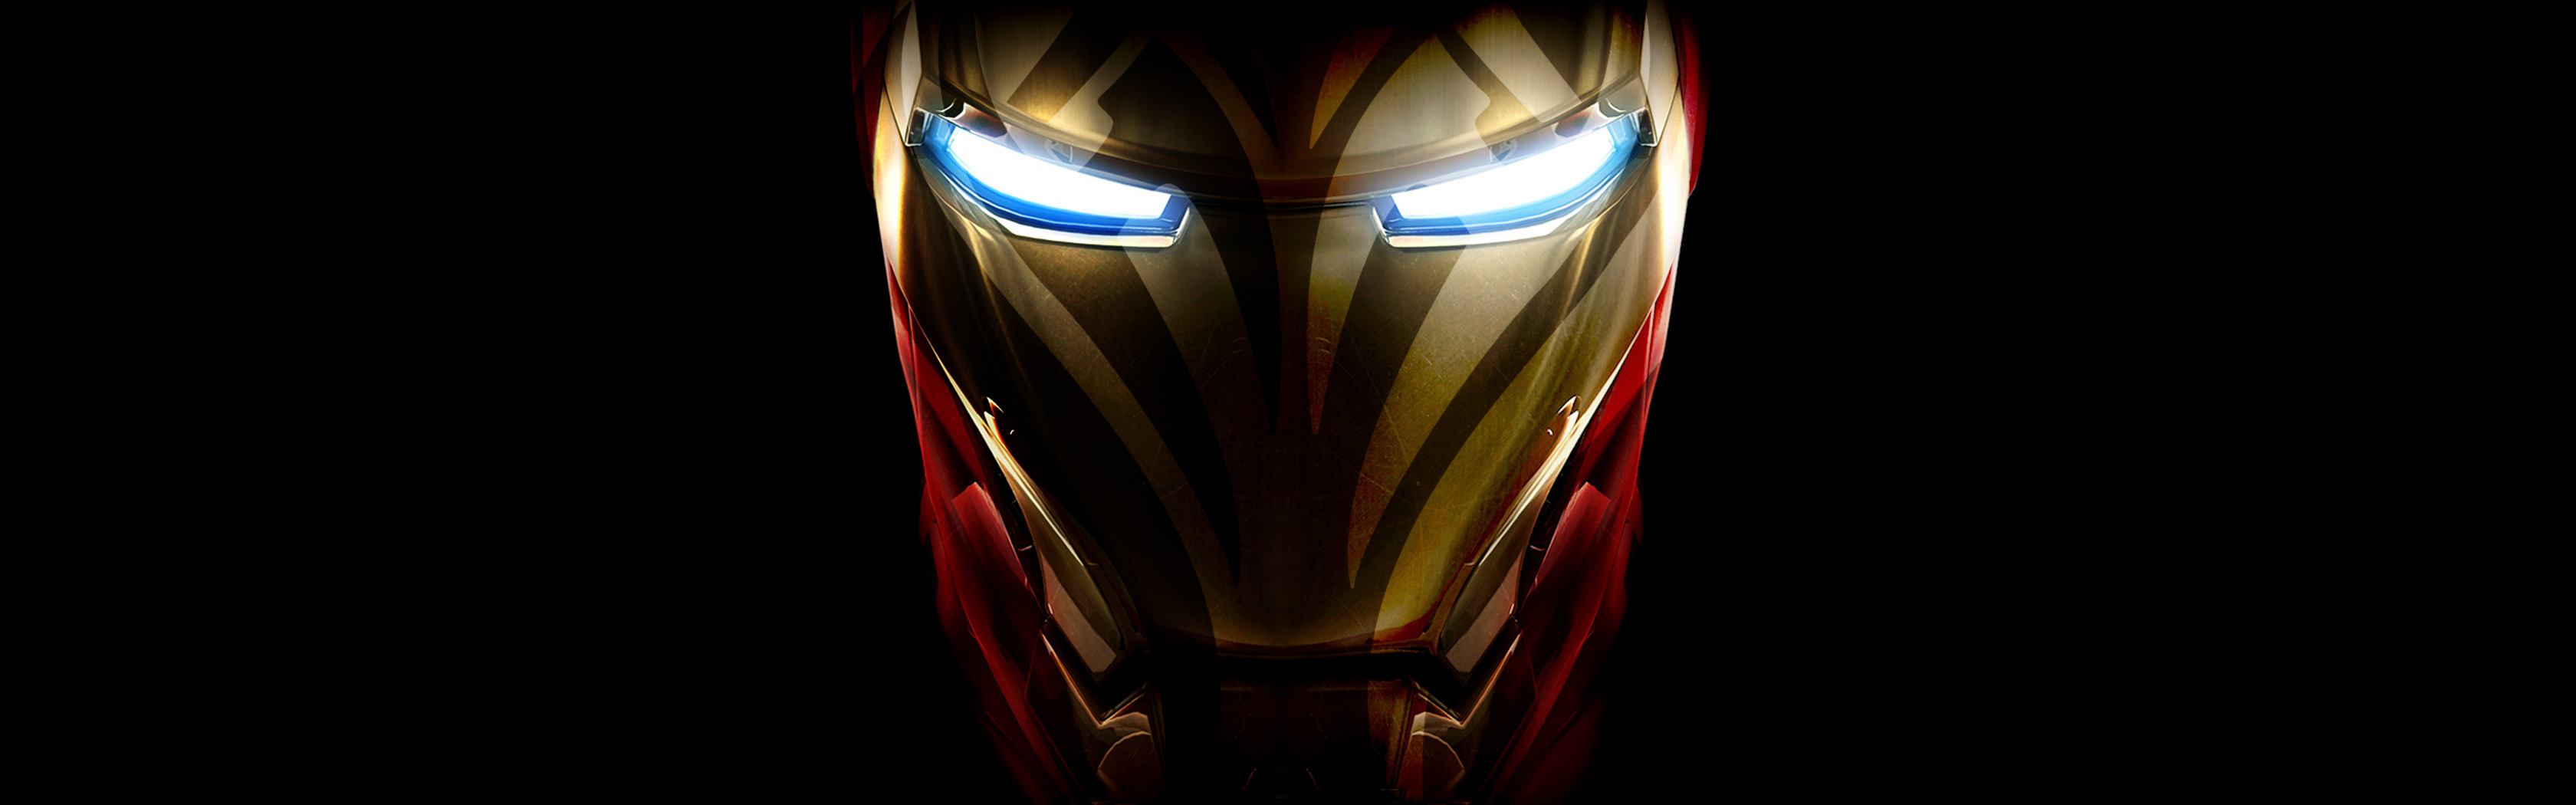 iron man hd wallpapers 18 Iron Man HD Wallpapers 3360x1050